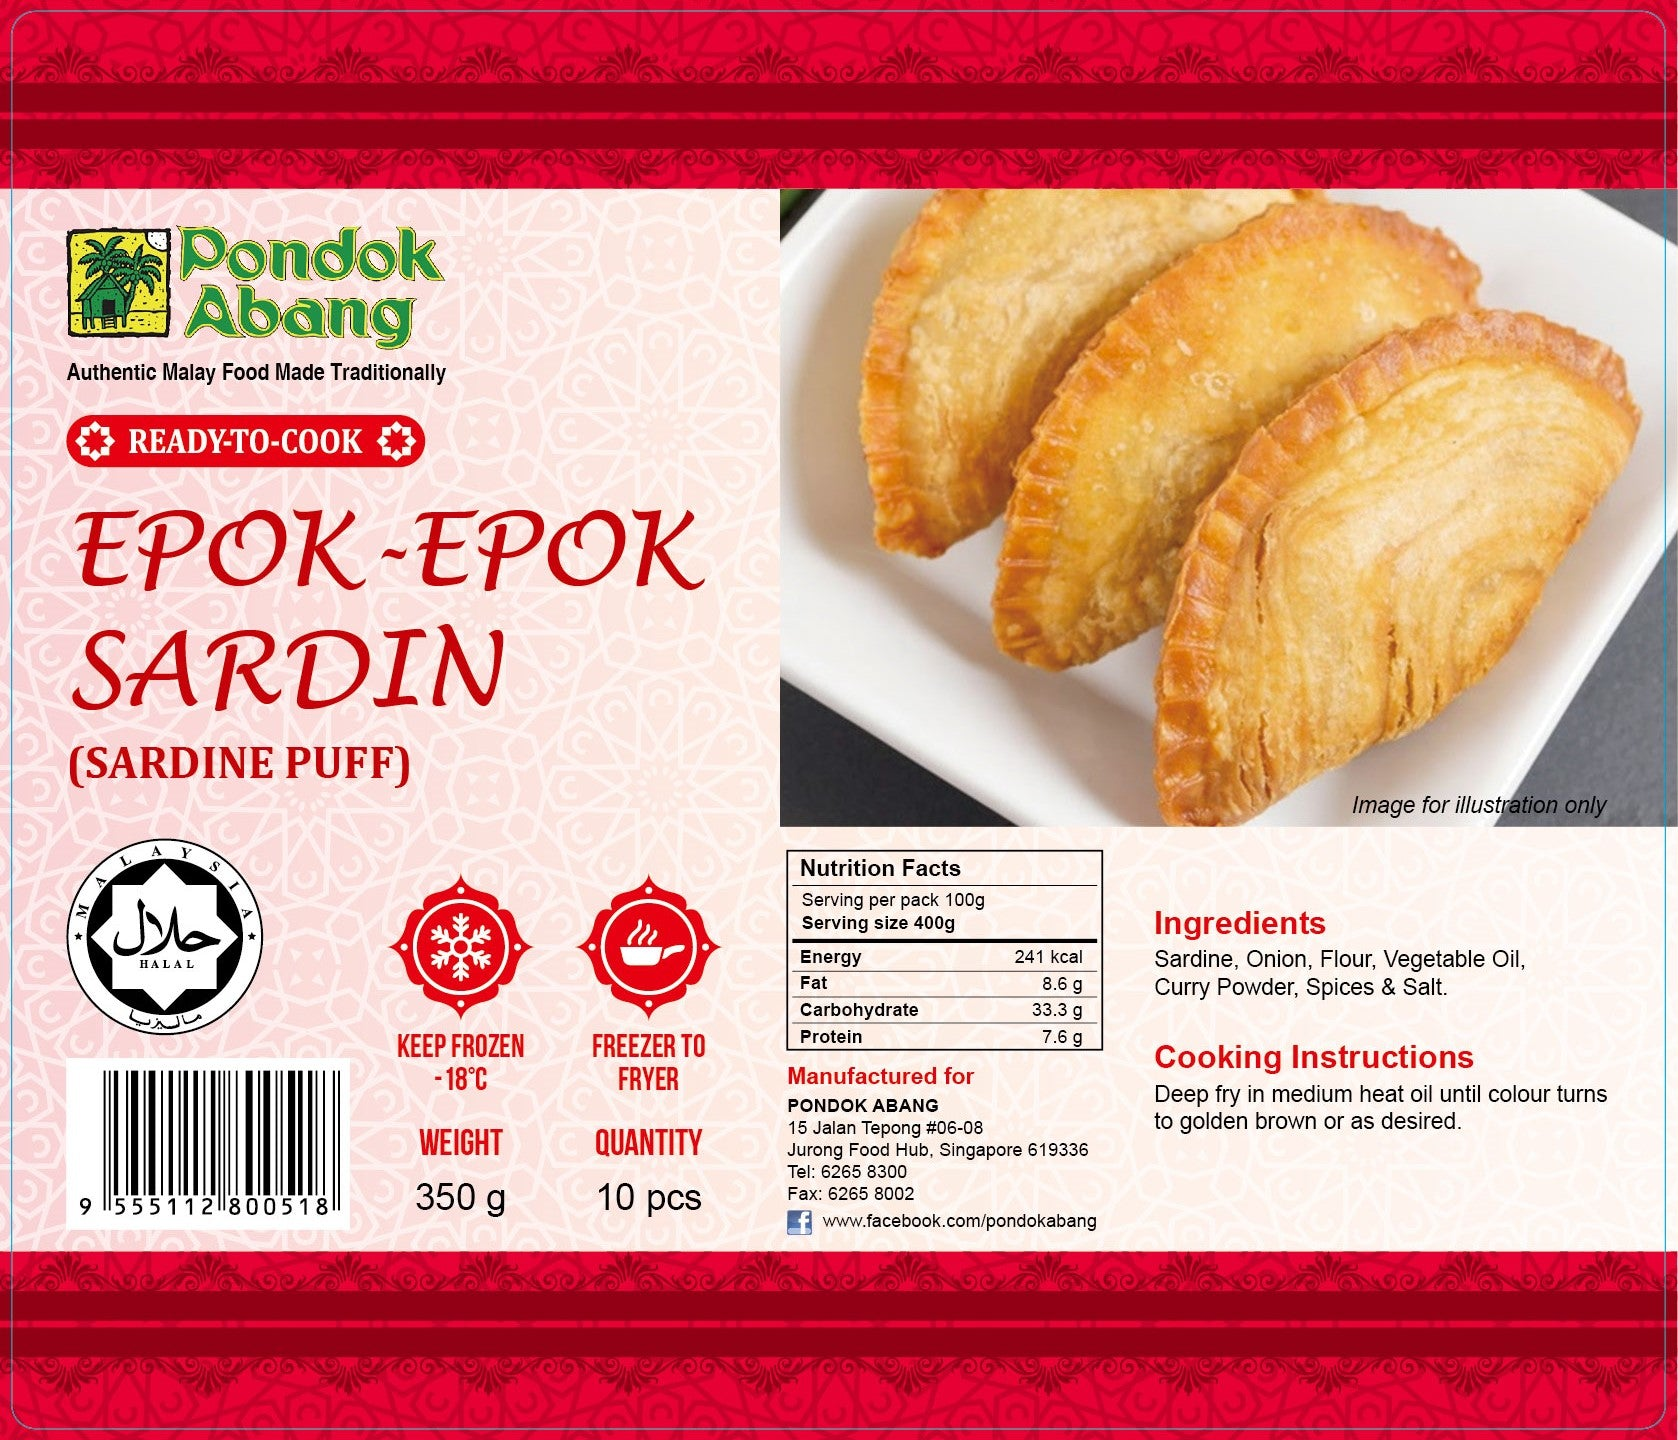 Sardine Curry Puffs 10pcs (Epok-Epok Sardin 10pcs)